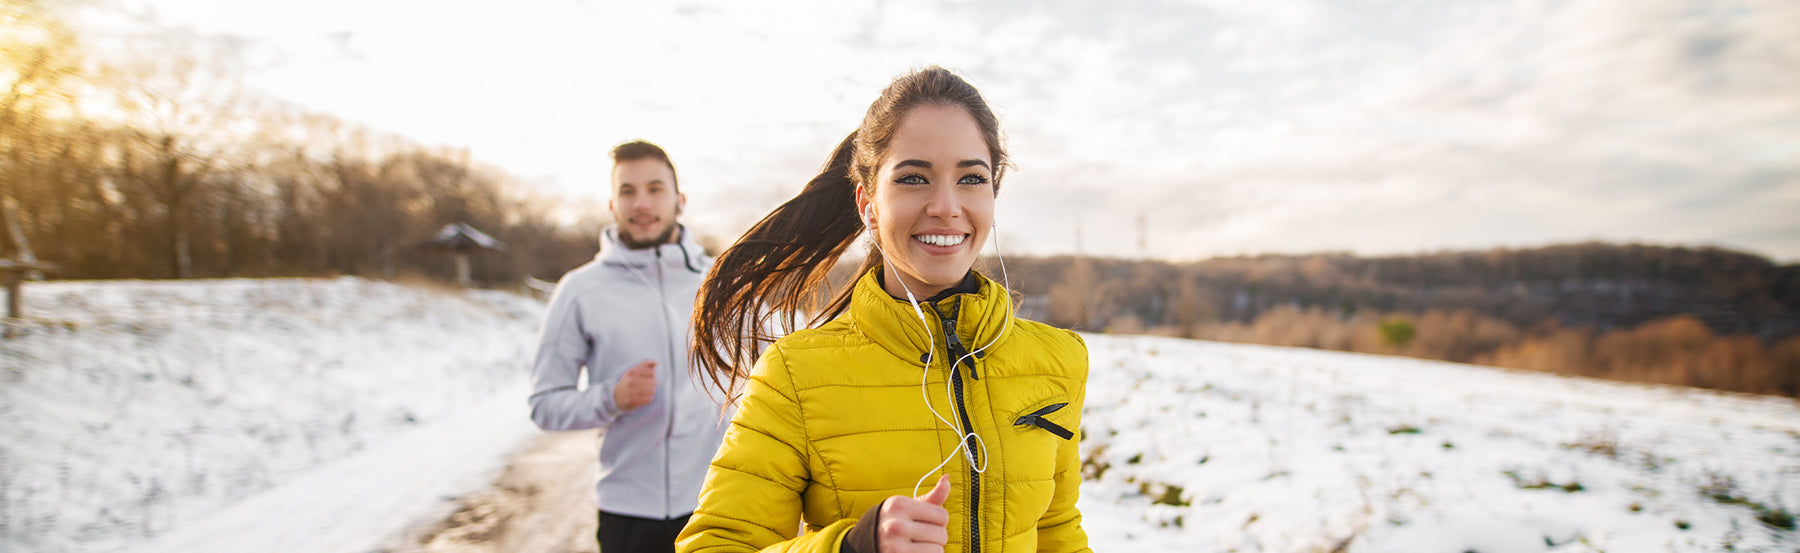 Winter Weather Safety Tips for Outdoor Exercise